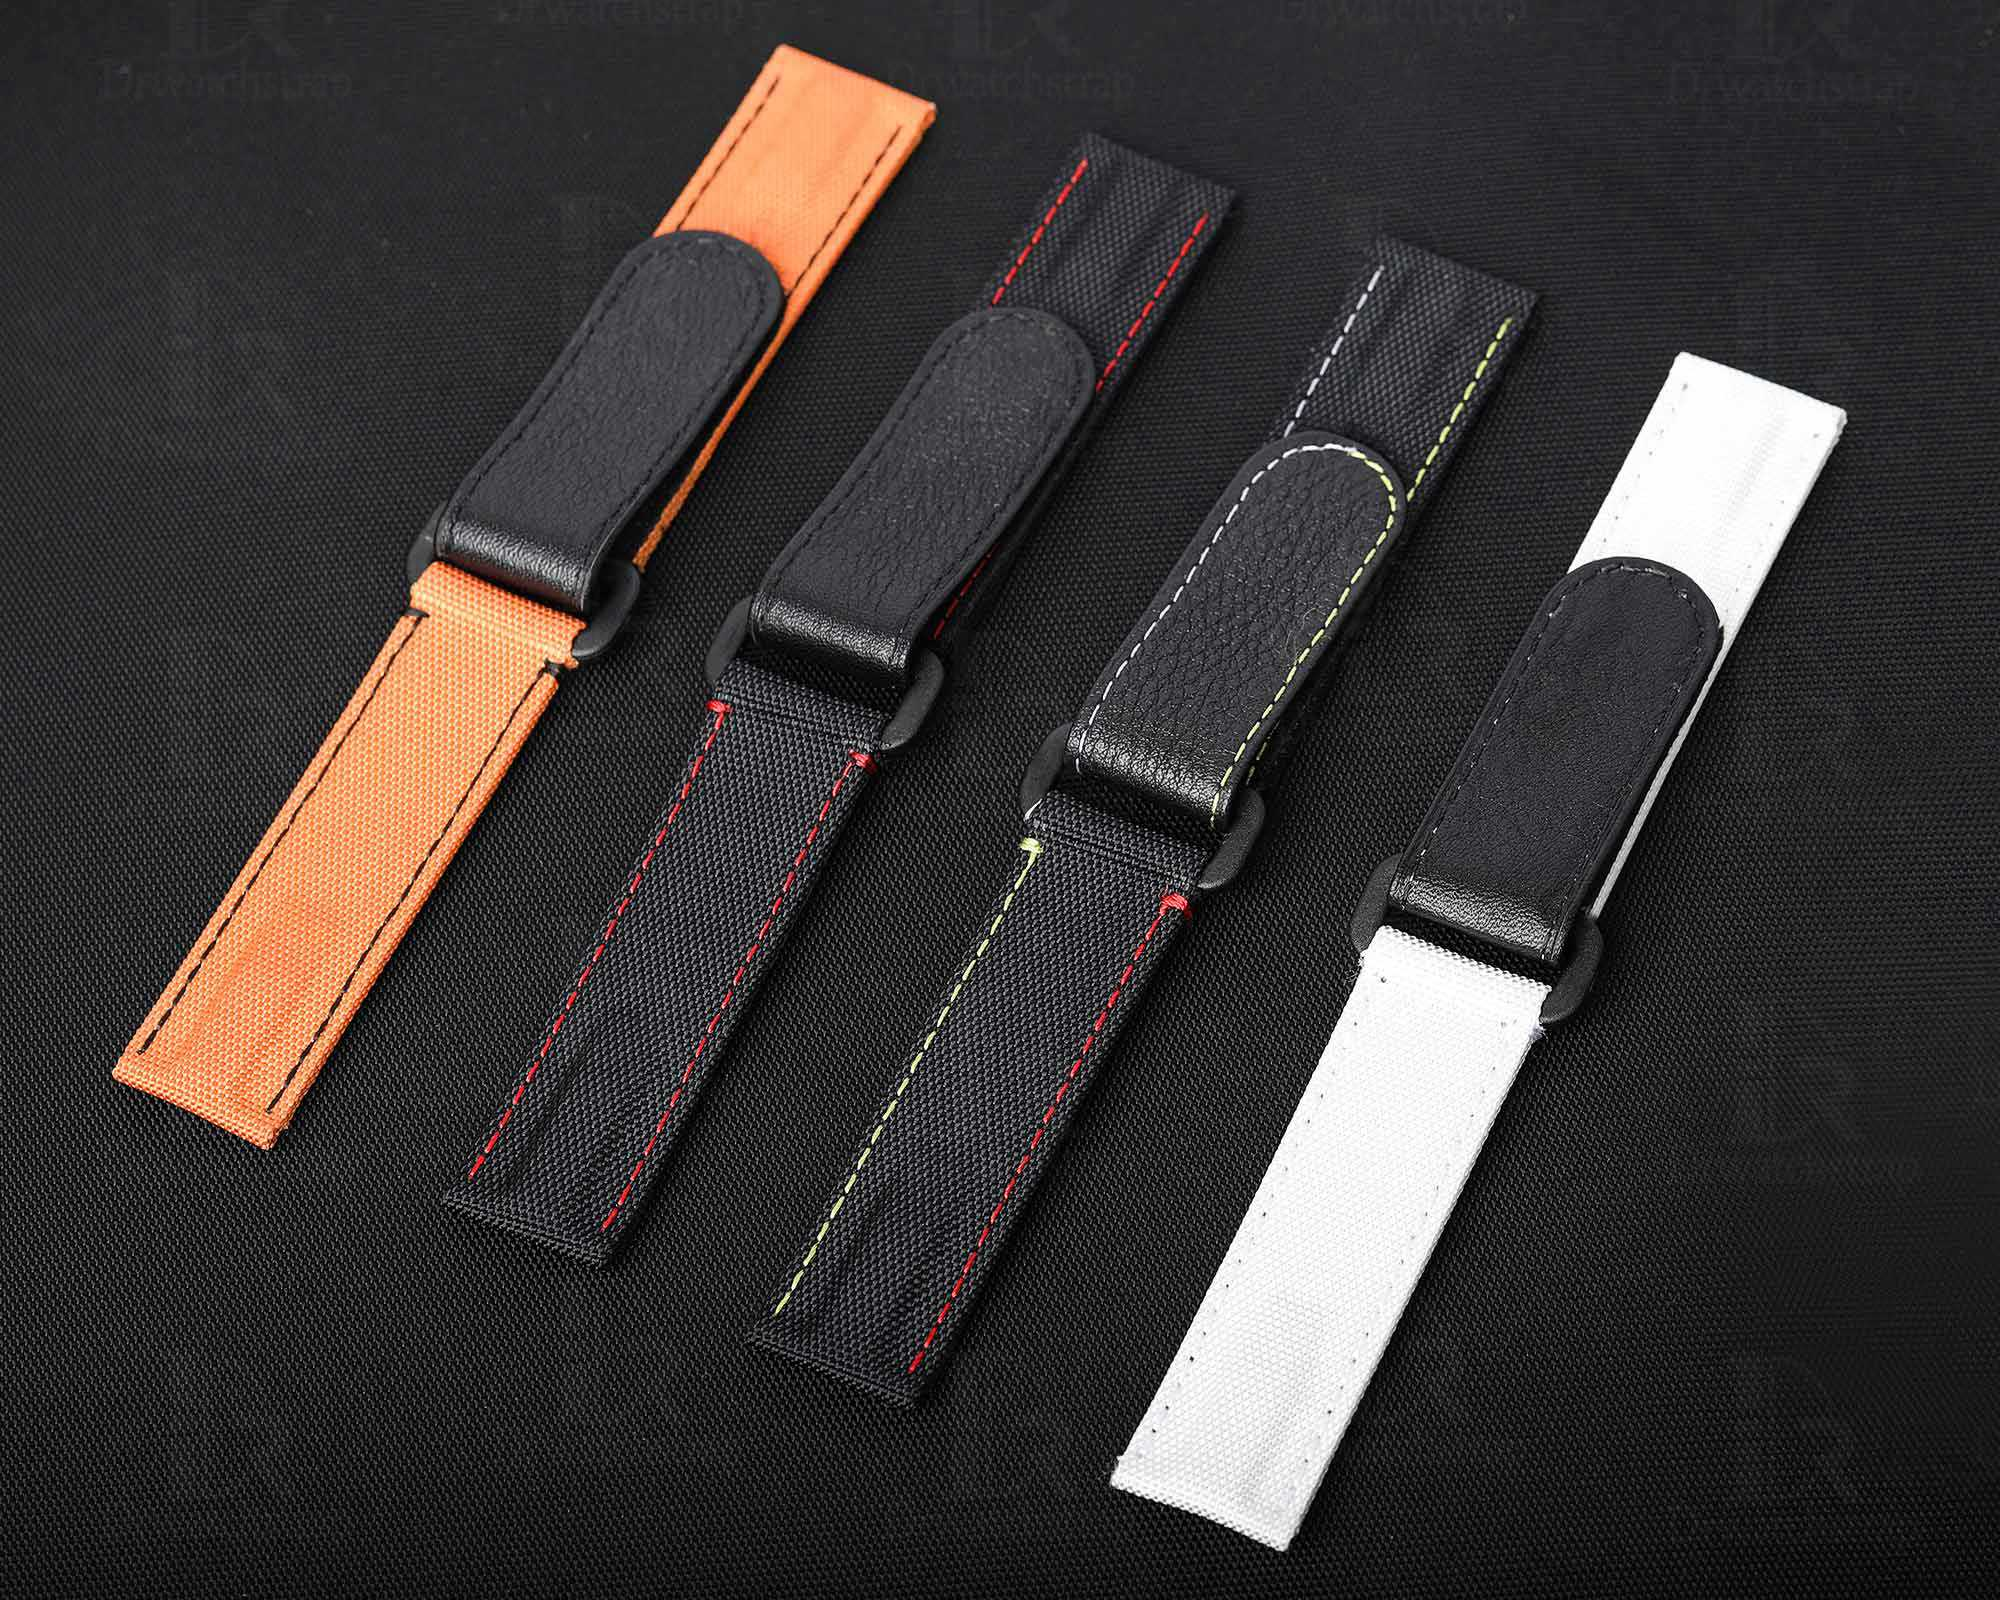 Rolex velcro watch band black, white, orange colors available. Stitching color can be personalized